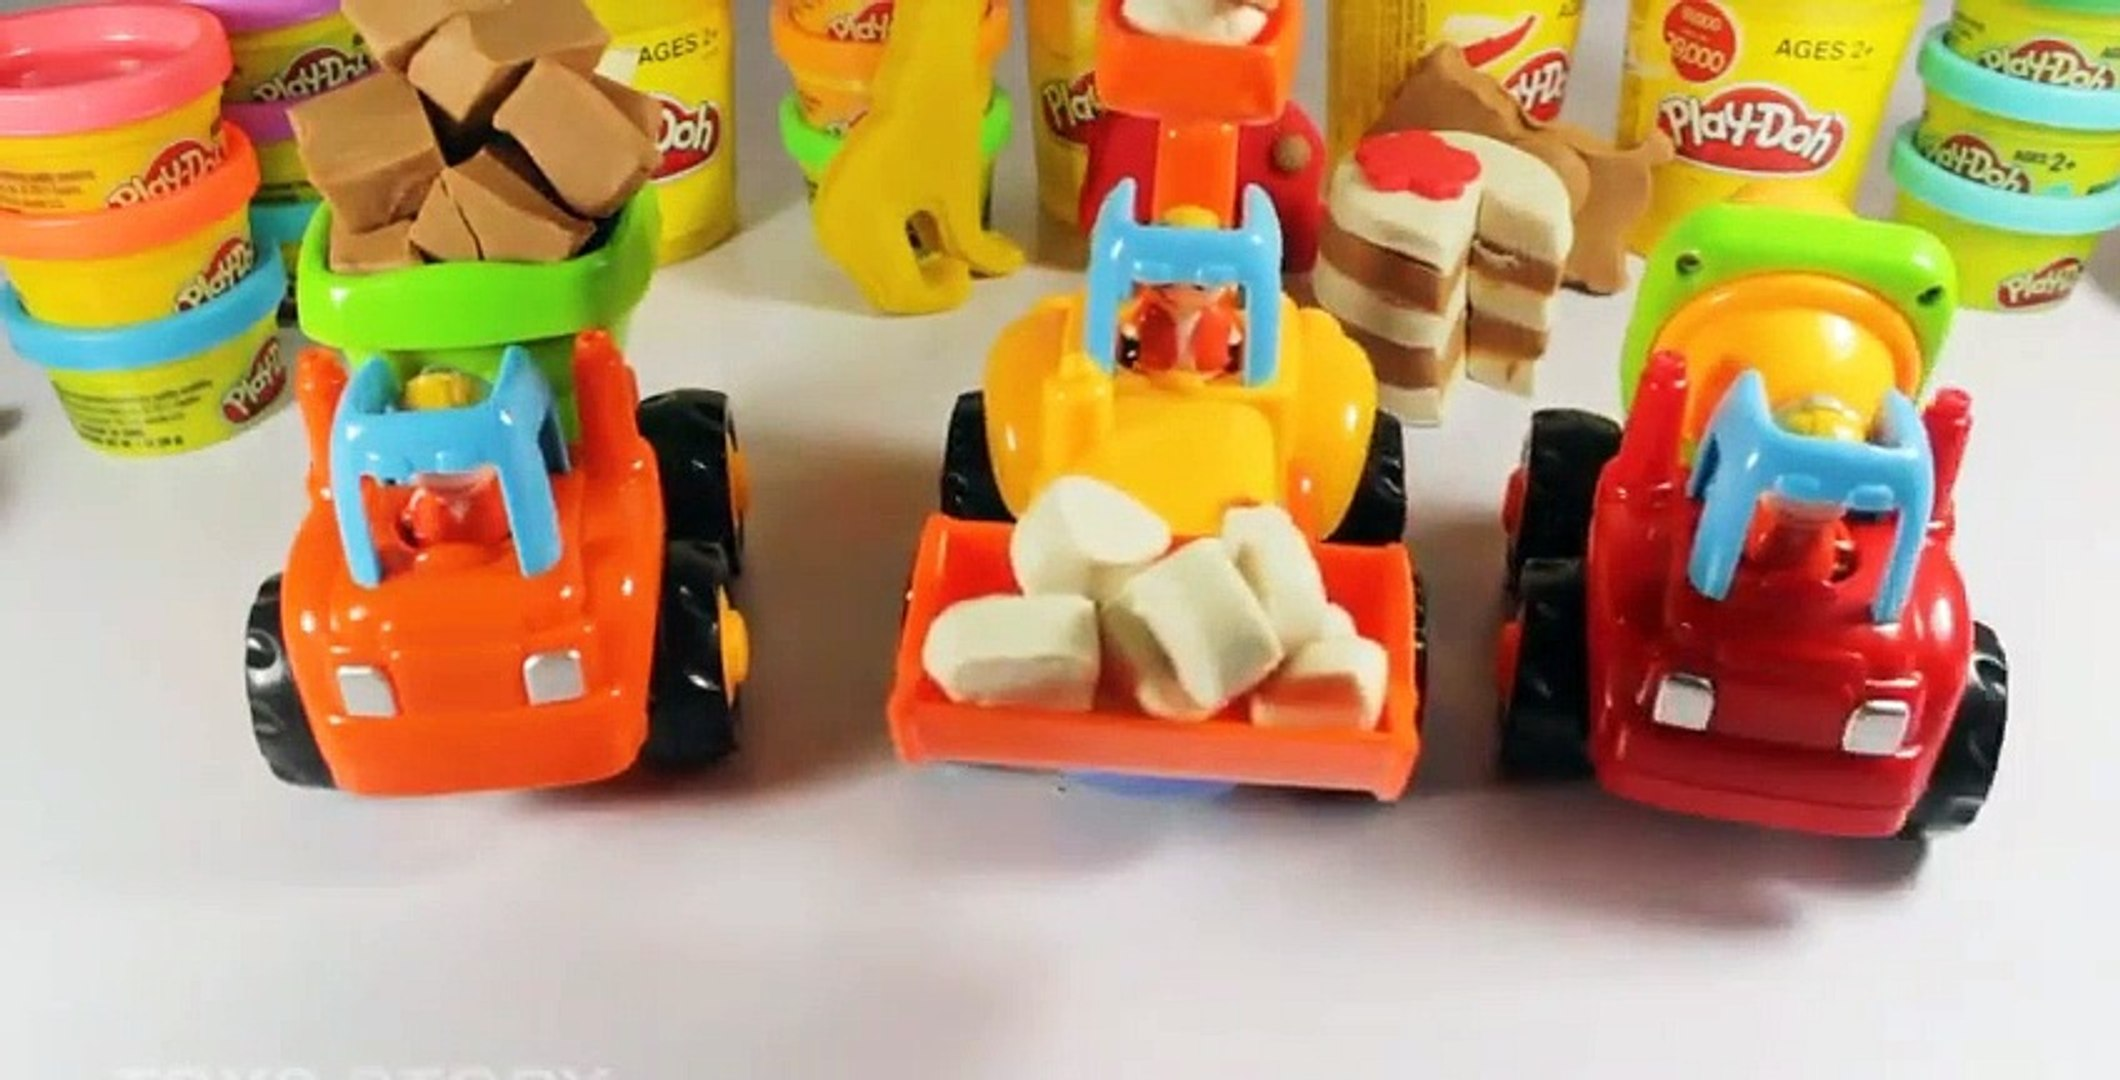 Play Cars Toy For Kids  How To Make Play Cake Video Play Doh -Kids -VIdeos NY